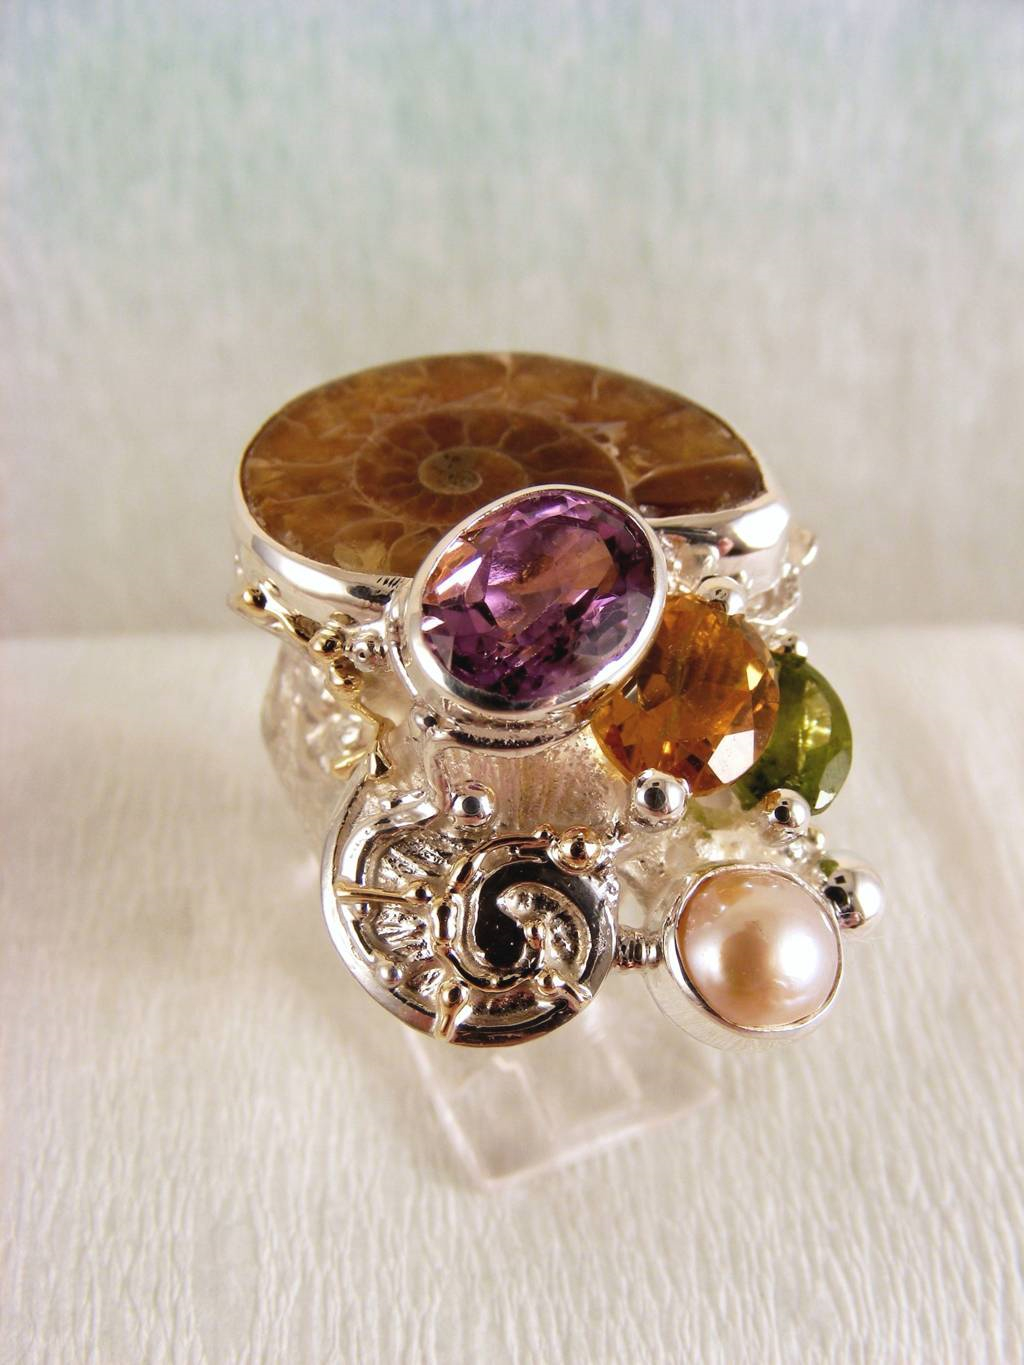 one of a kind jewellery, handmade artisan jewellery, mixed metal artisan jewellery, artisan jewellery with gemstones and pearls, Band #Ring 5240